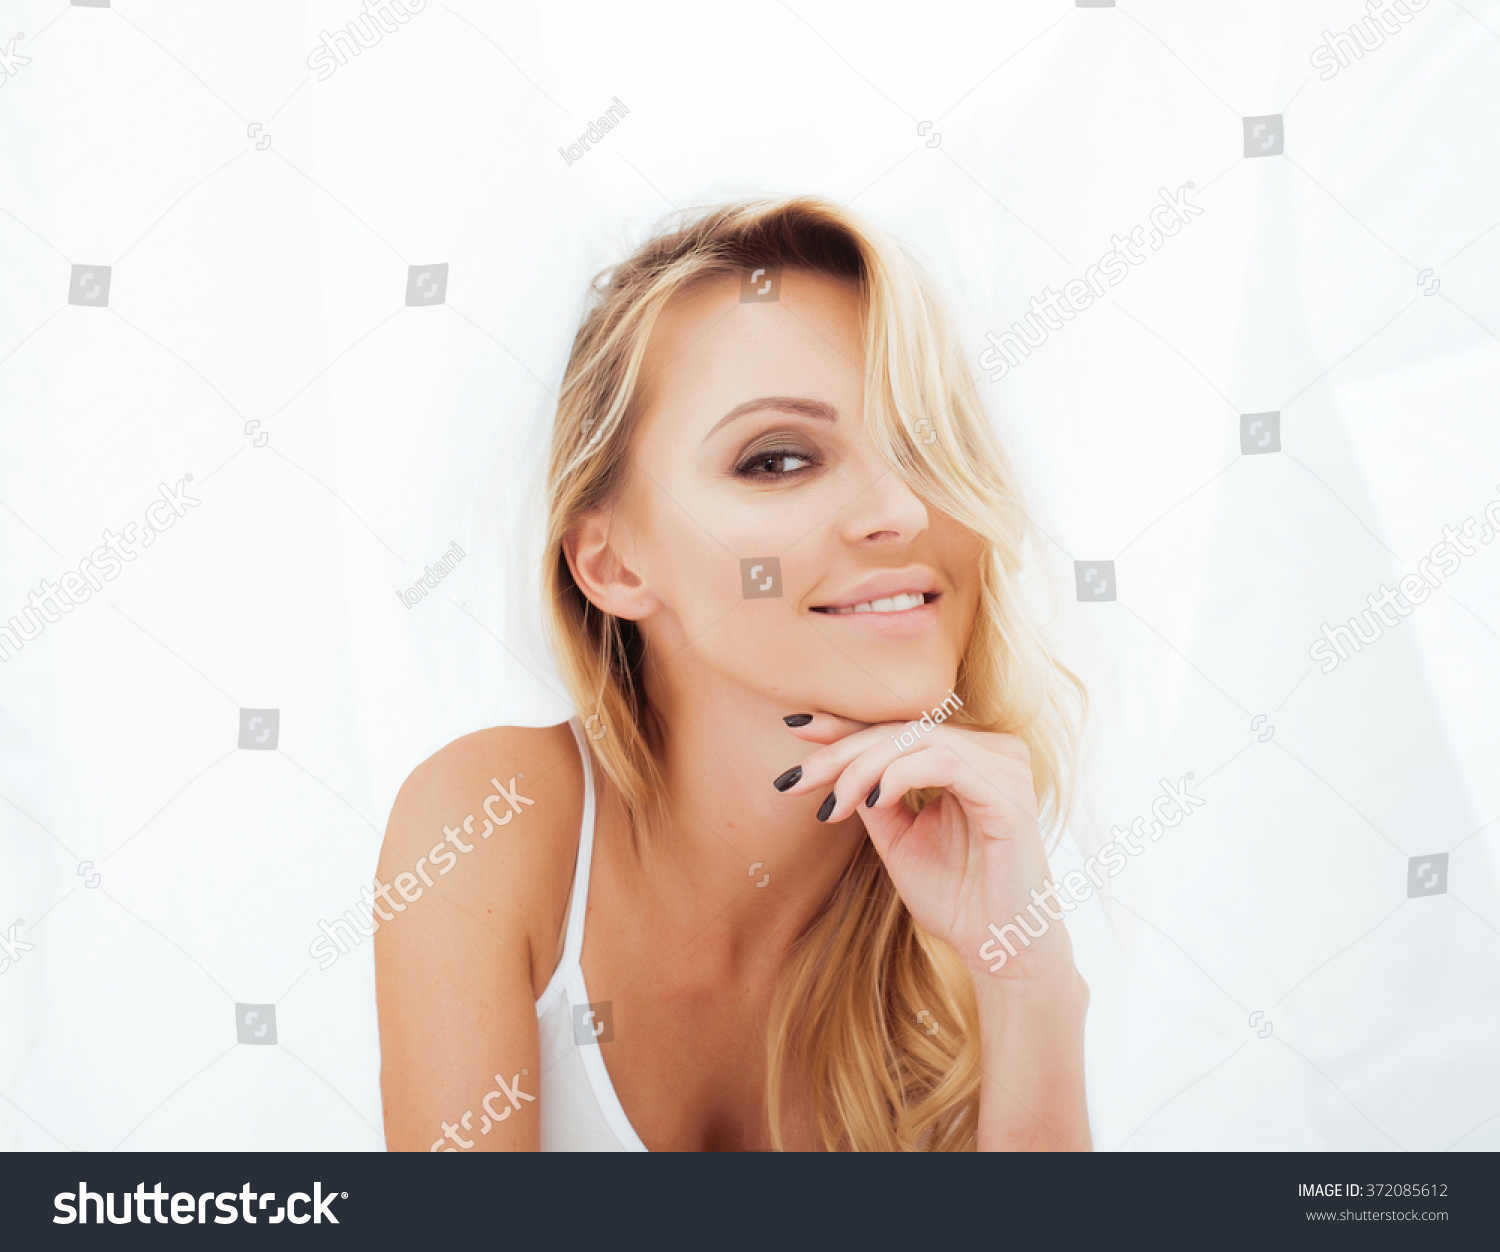 stock-photo-young-pretty-blond-woman-in-bed-covered-white-sheets-smiling-cheerful-sexy-look-close-up-372085612.jpg